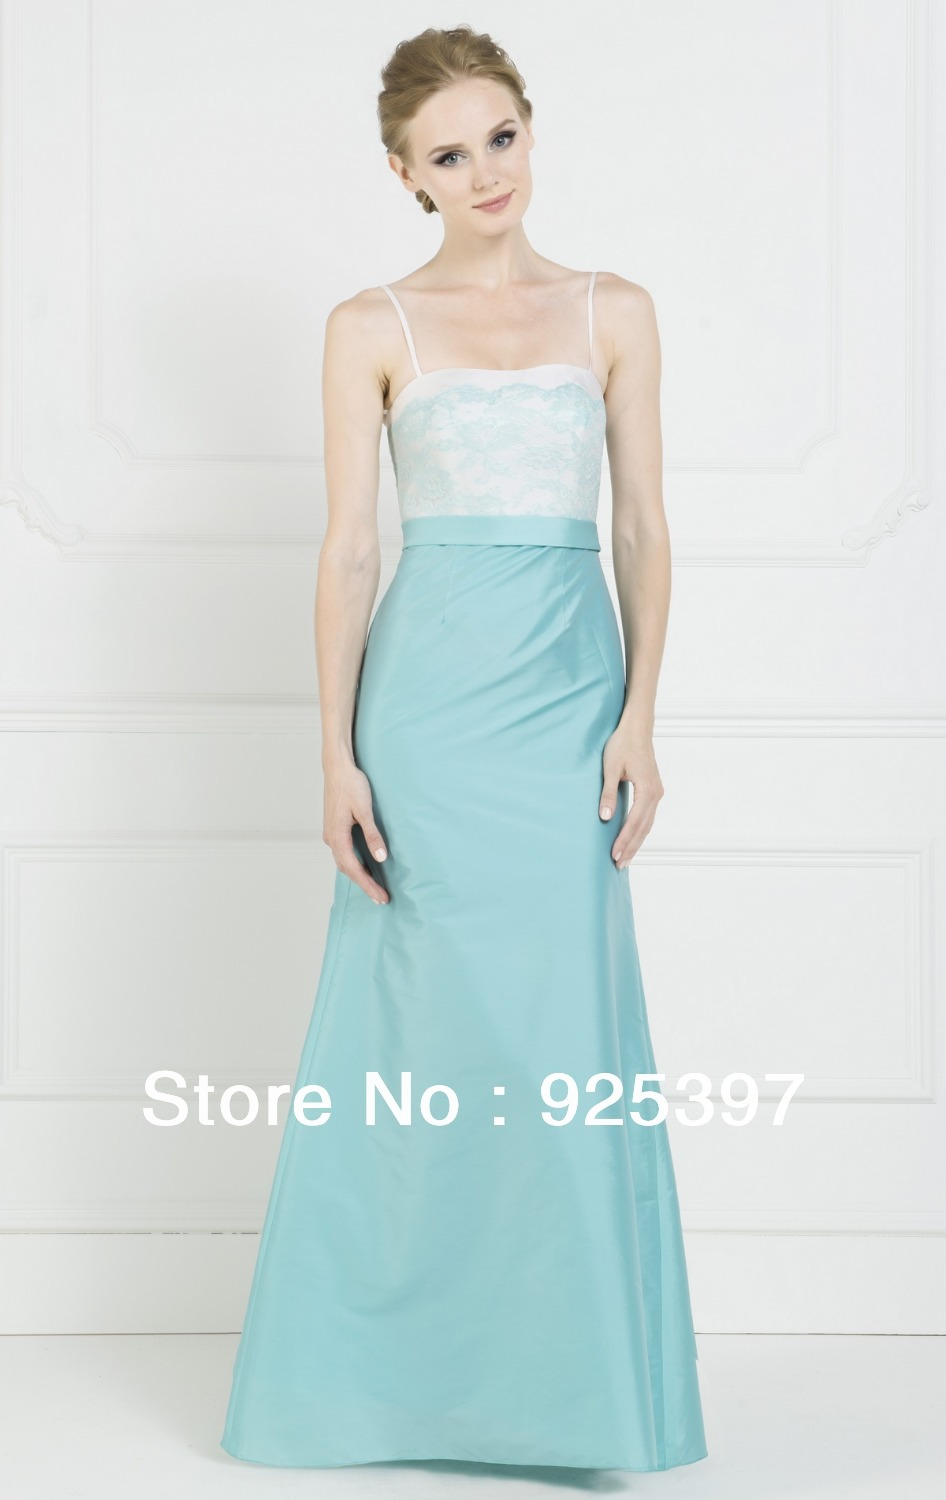 Spaghetti Strap Lace Bodice Floor Length Teal Colored Bridesmaid Dresses In From Weddings Events On Aliexpress Alibaba Group